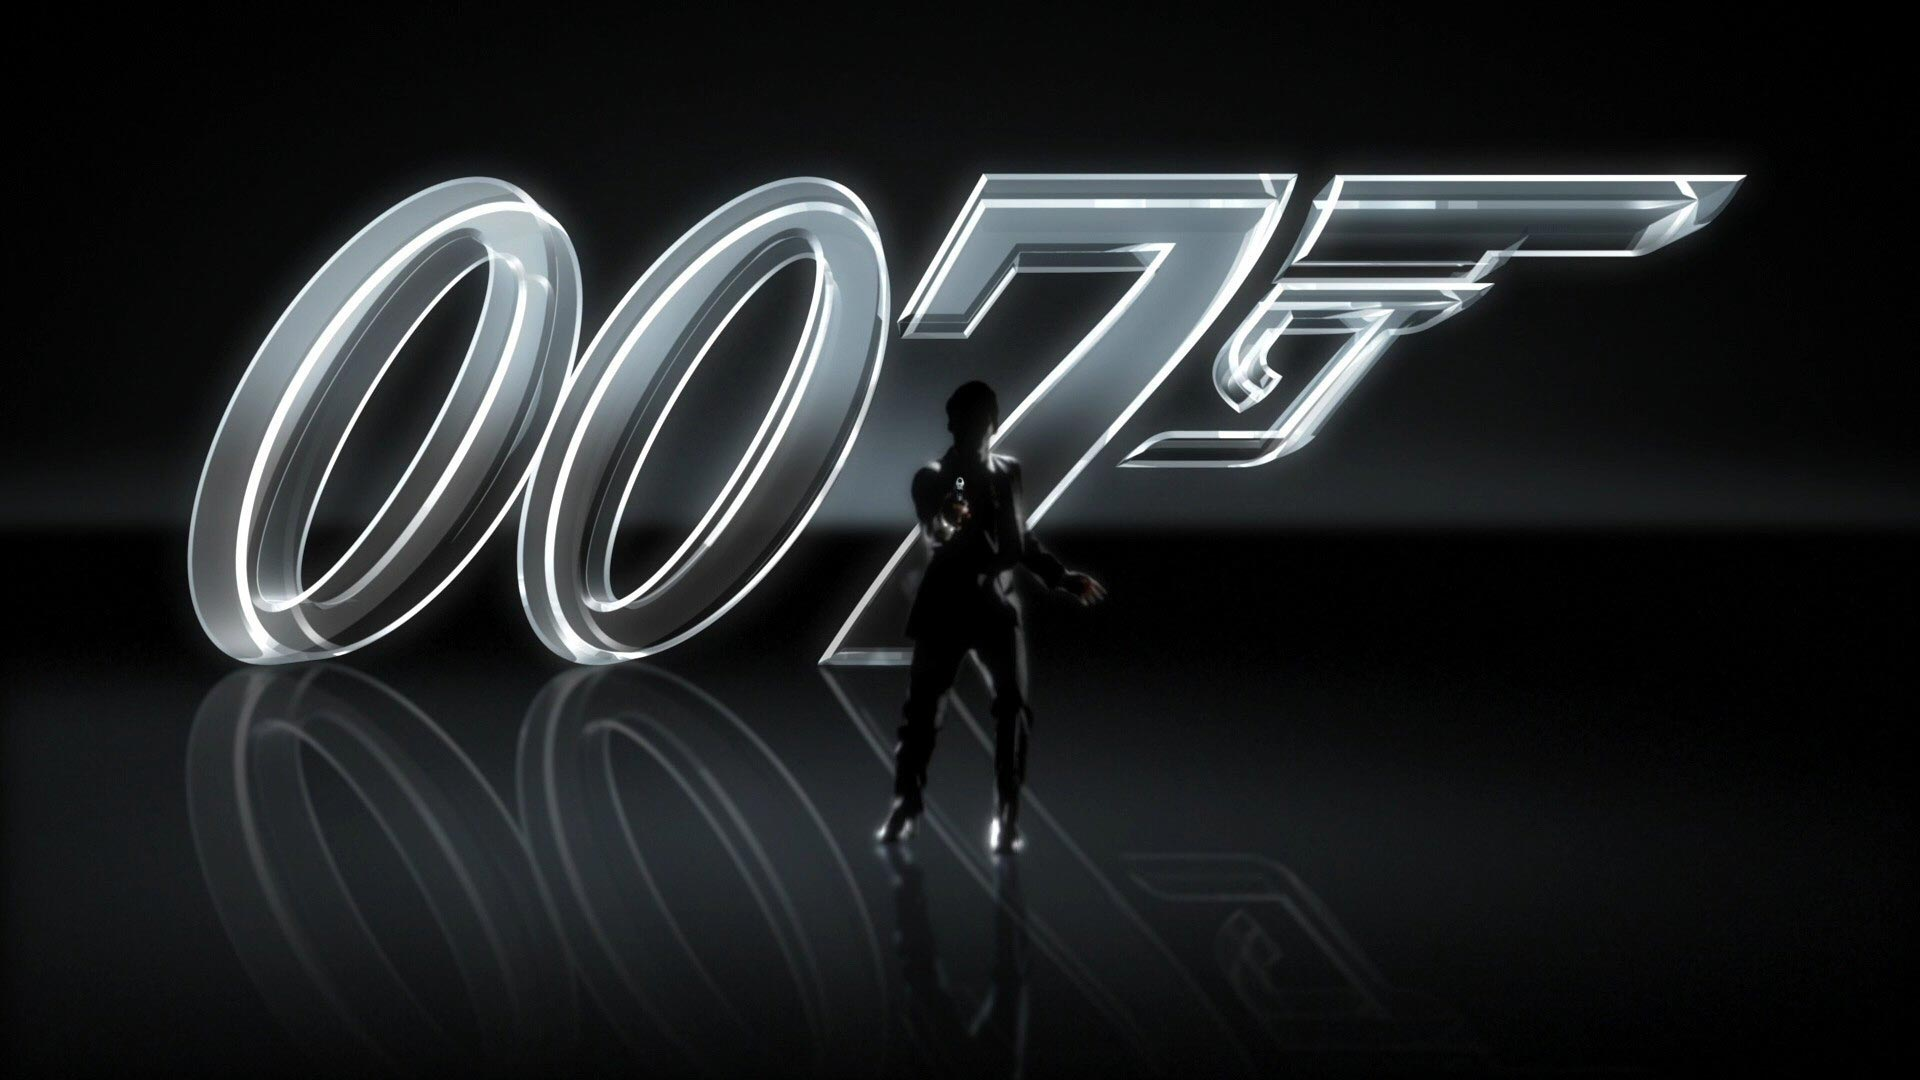 James Bond Wallpaper HD